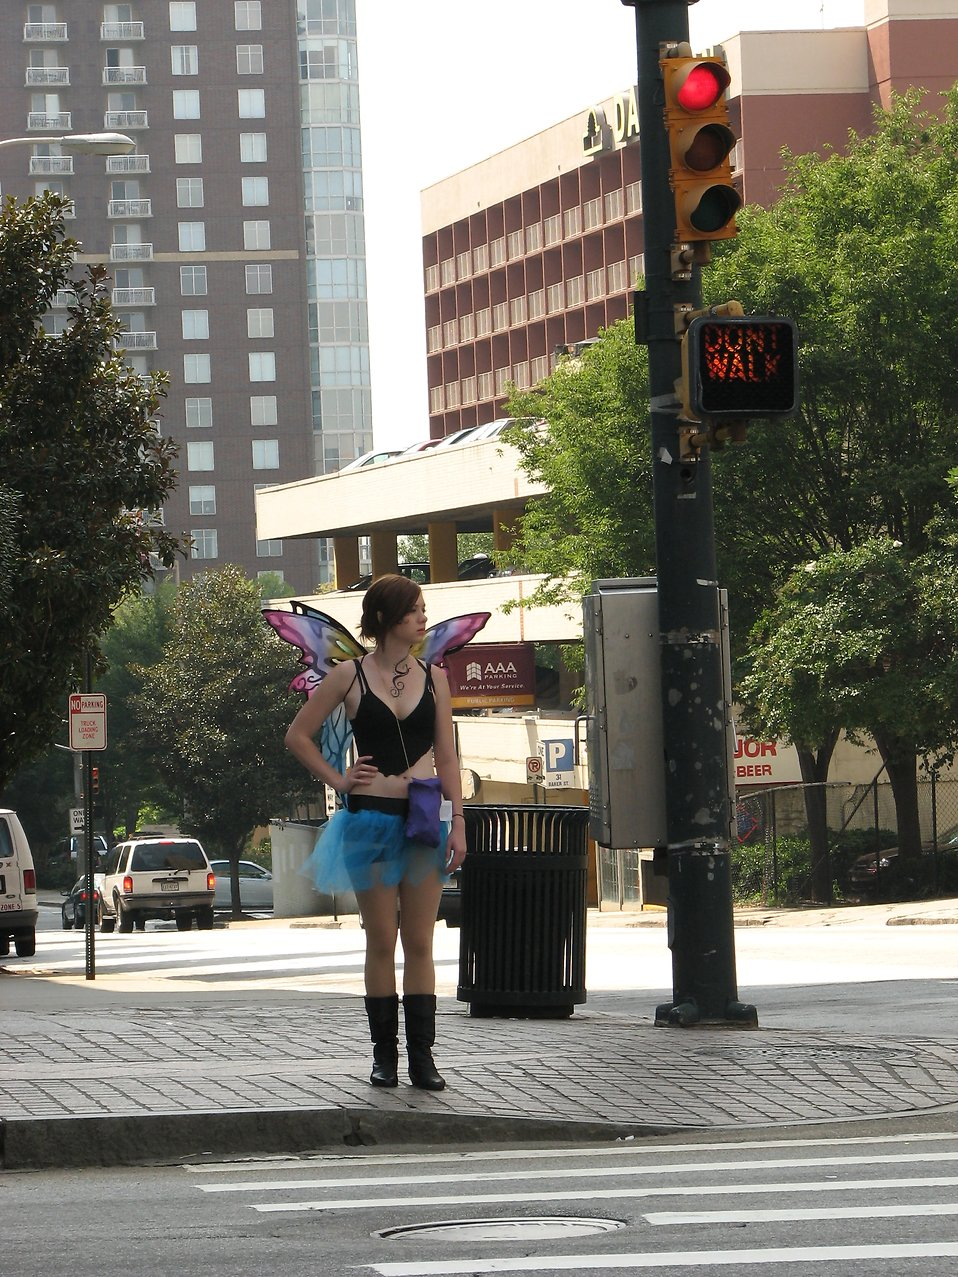 Girl in fairy costume waiting to cross the street at Dragoncon 2008 : Free Stock Photo